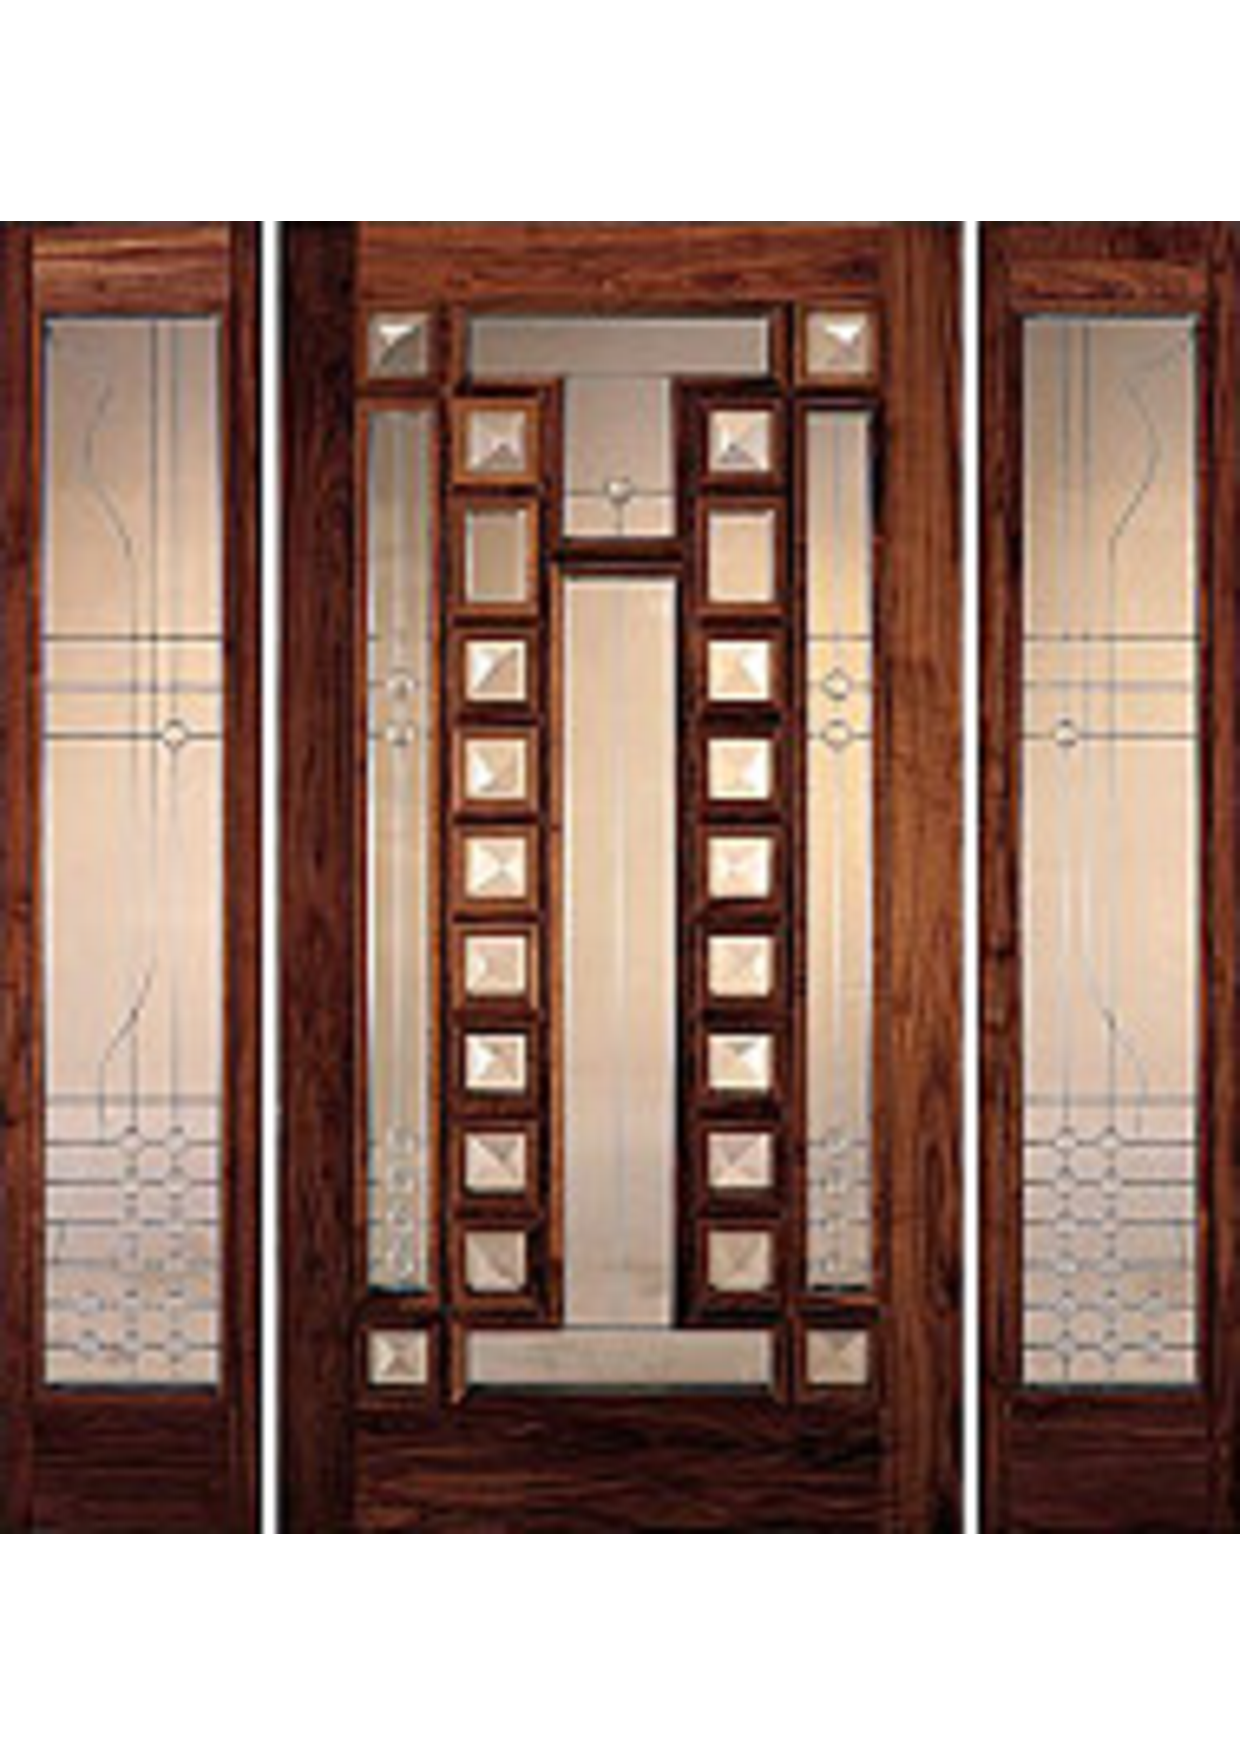 Top  Ideas About Door Design To Develop Sample Pieces By Bonham - Main door designs for home